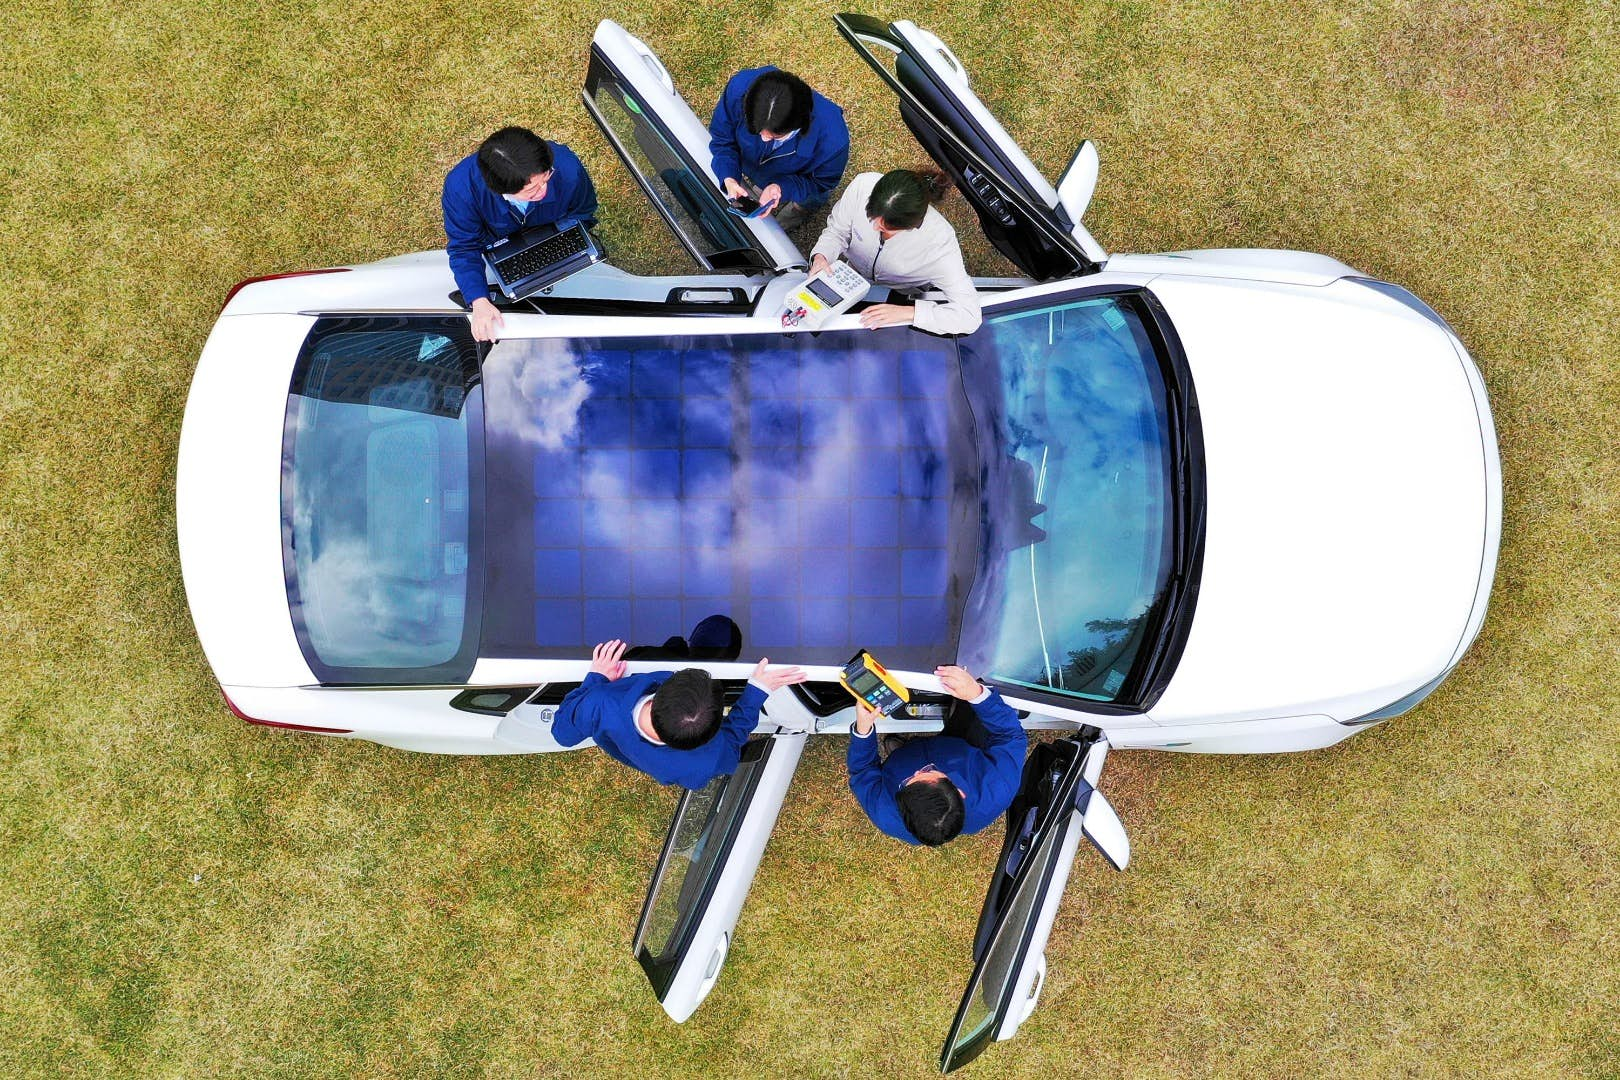 Hyundai Unveils The Worlds First Car With A Solar Power Panoramic Cars On Pinterest Powered And Its Integration Will Evolve Over Time To Include Semi Transparent Harvesting Sunroof Roof Hood Combo